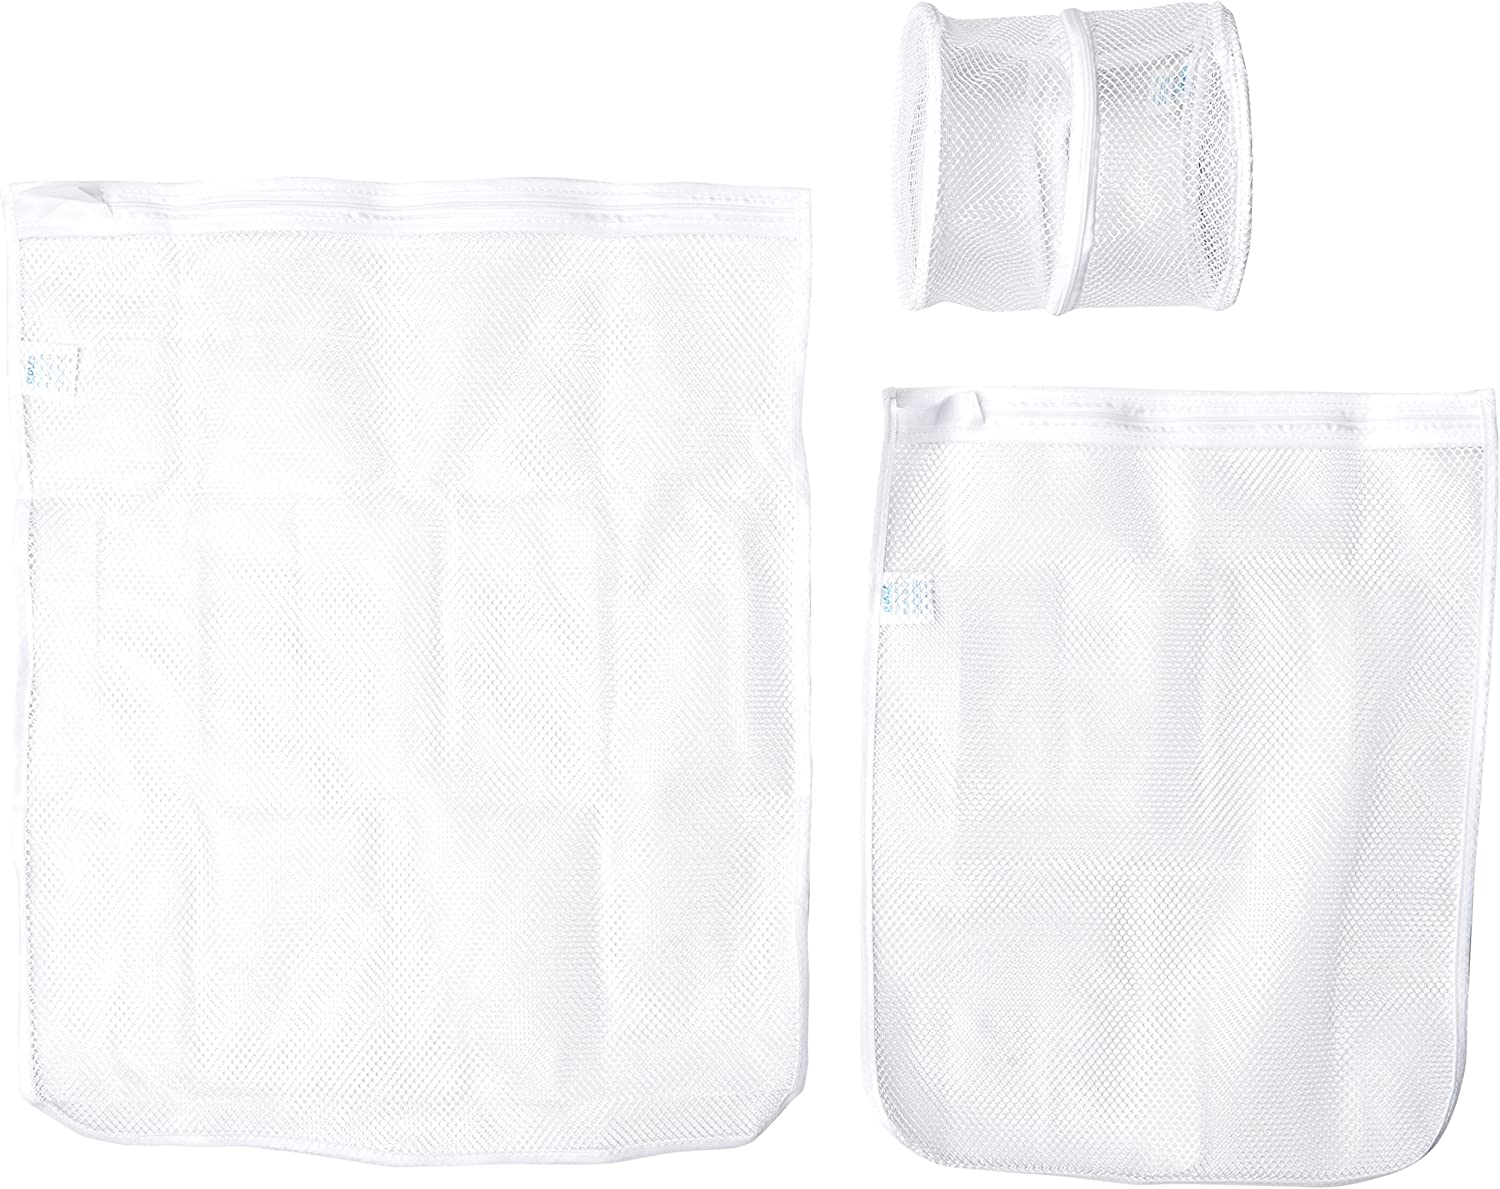 Smart Design Intimate Wash Bag w/ Safety Zipper - Swater, Lingerie, & Intimate Sizes - Washer & Dryer Safe - Mesh Polyester Material - for Delicates, Lingerie, & Baby Clothes (Set of 3) [White]